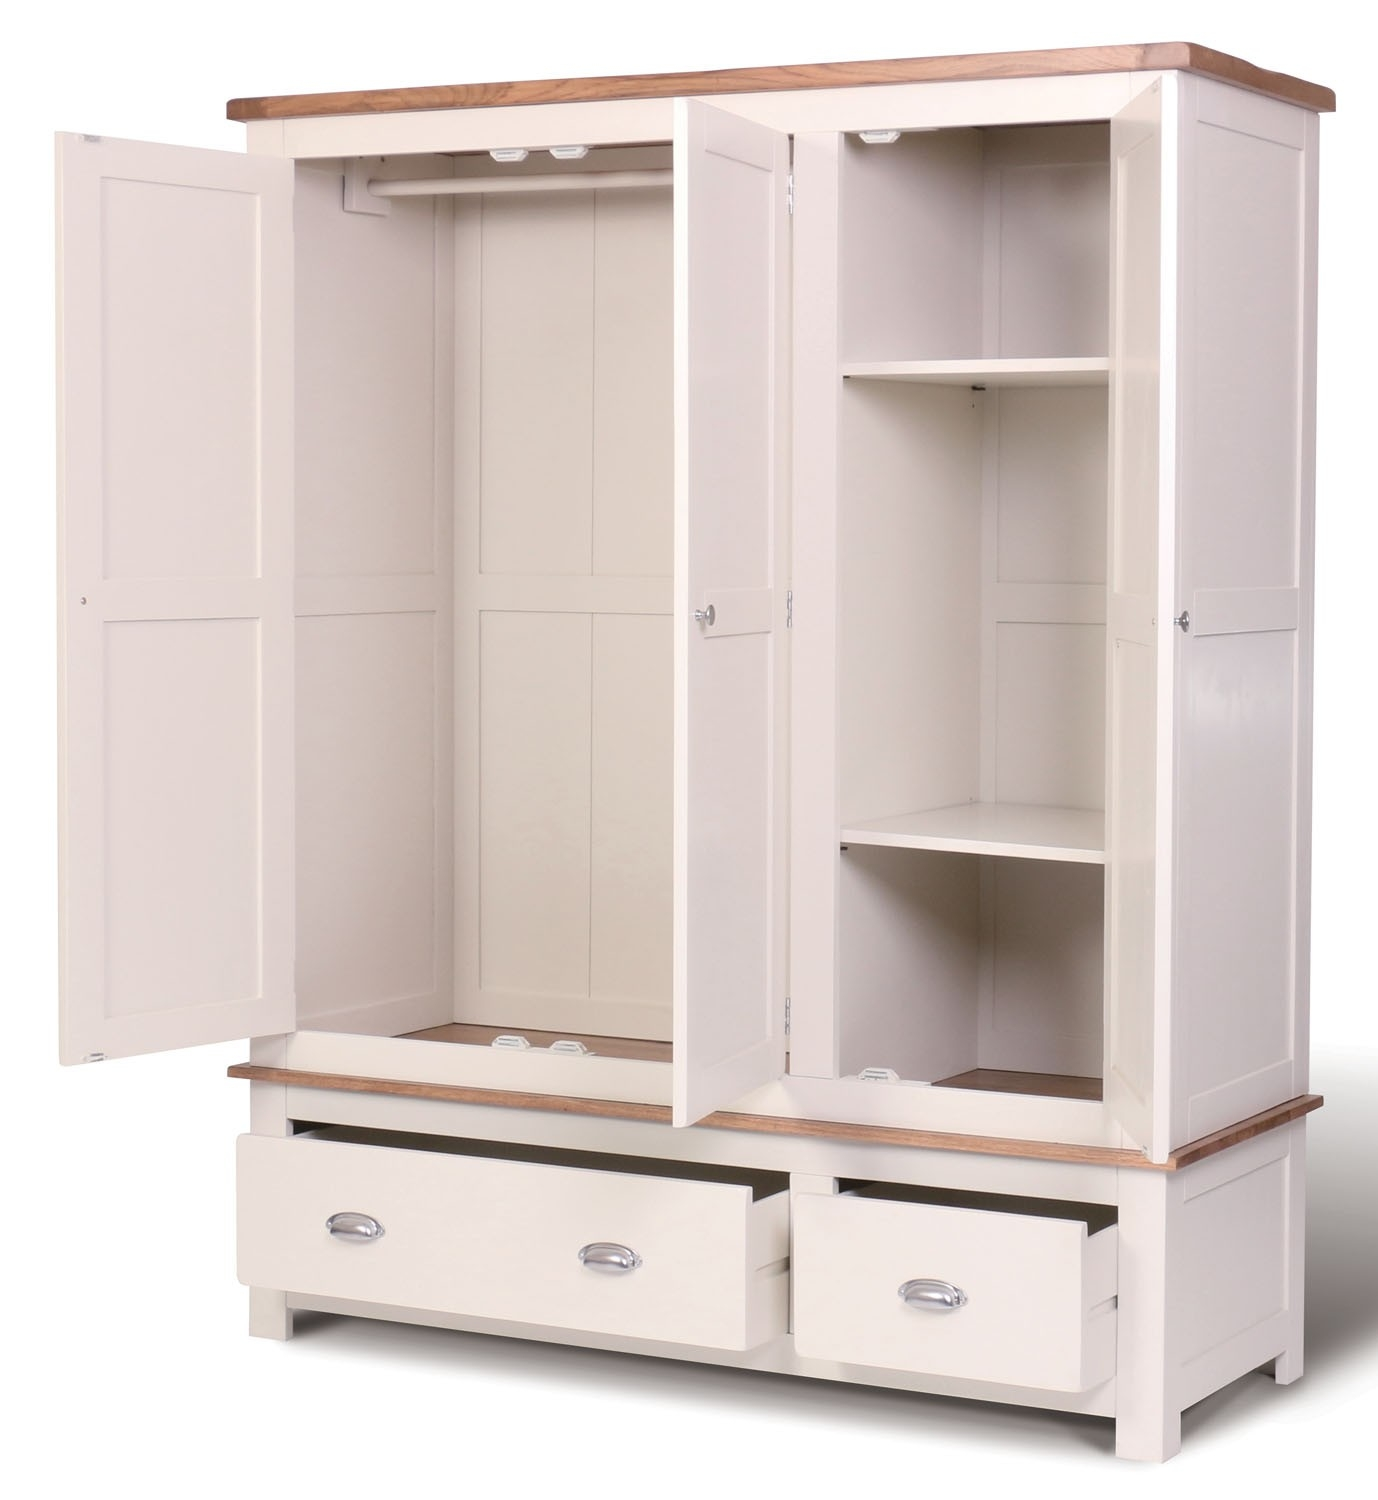 15 Photo Of Wardrobes With Shelves And Drawers